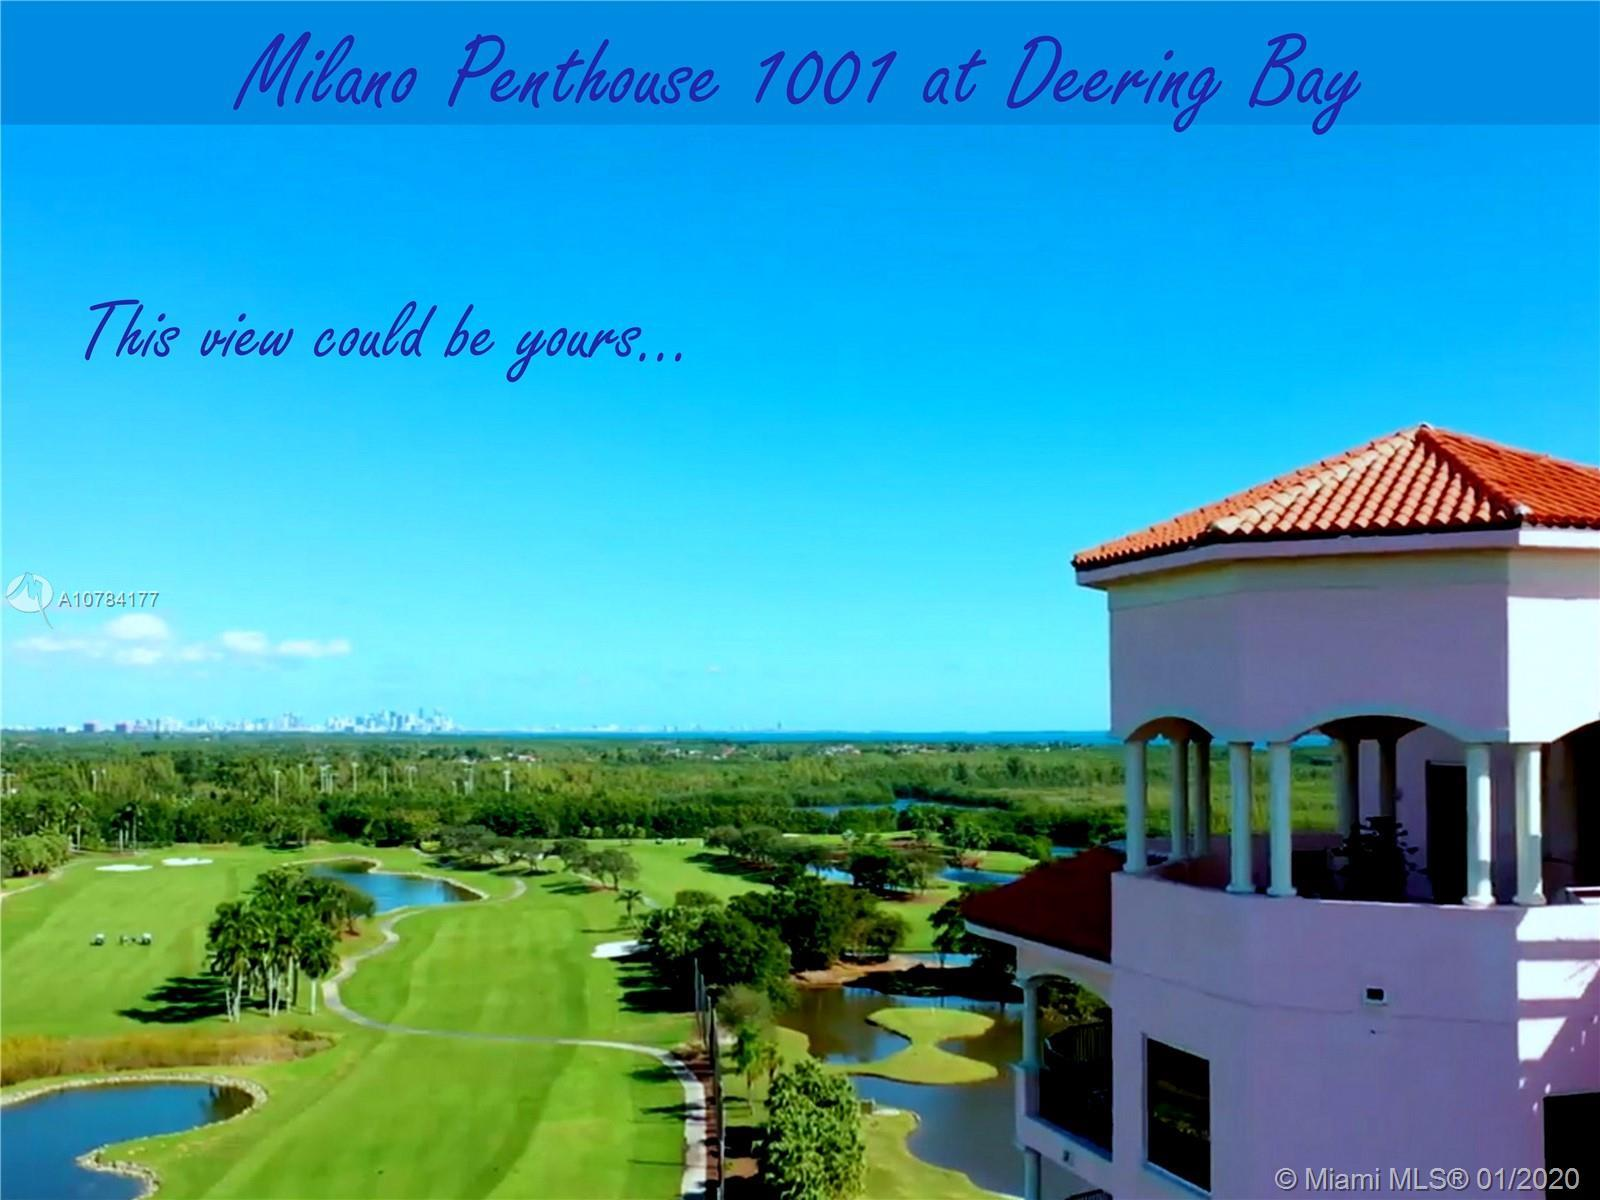 As you enter Deering Bay, life changes. The hustle & bustle of Miami is left behind, and the tranqui